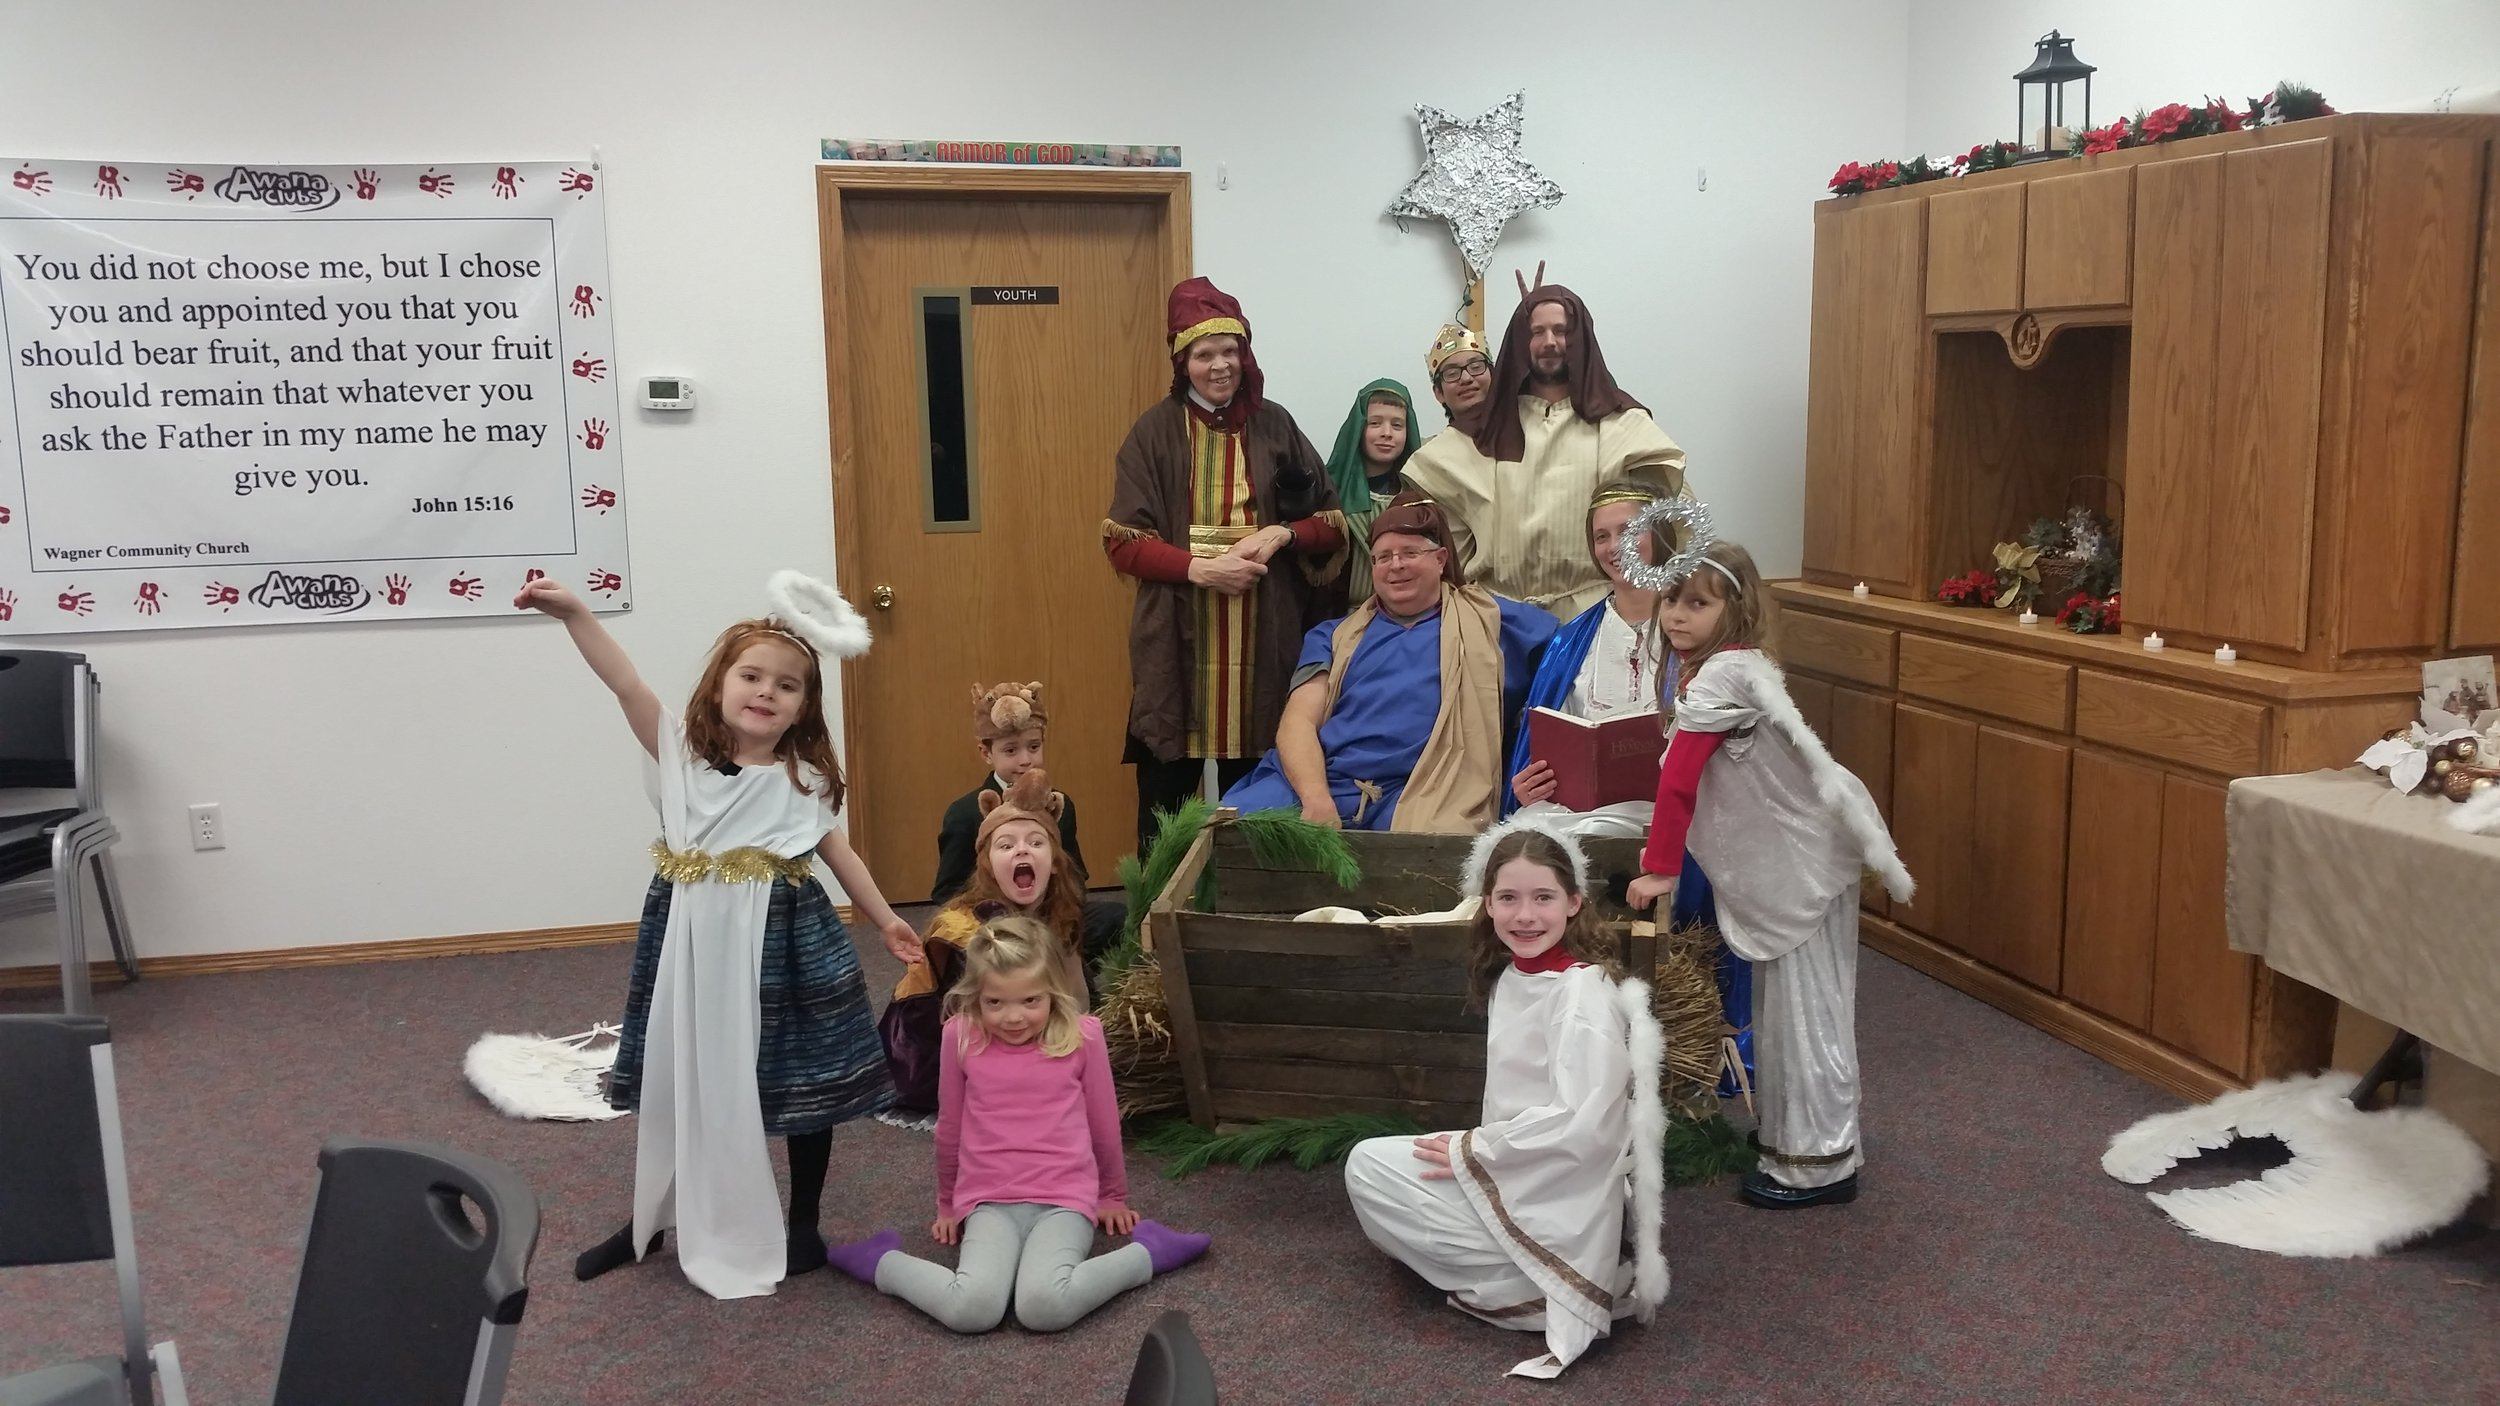 One church in South Dakota put on a sweet live nativity to entertain the guests before our concert. The camels really got into charachter!